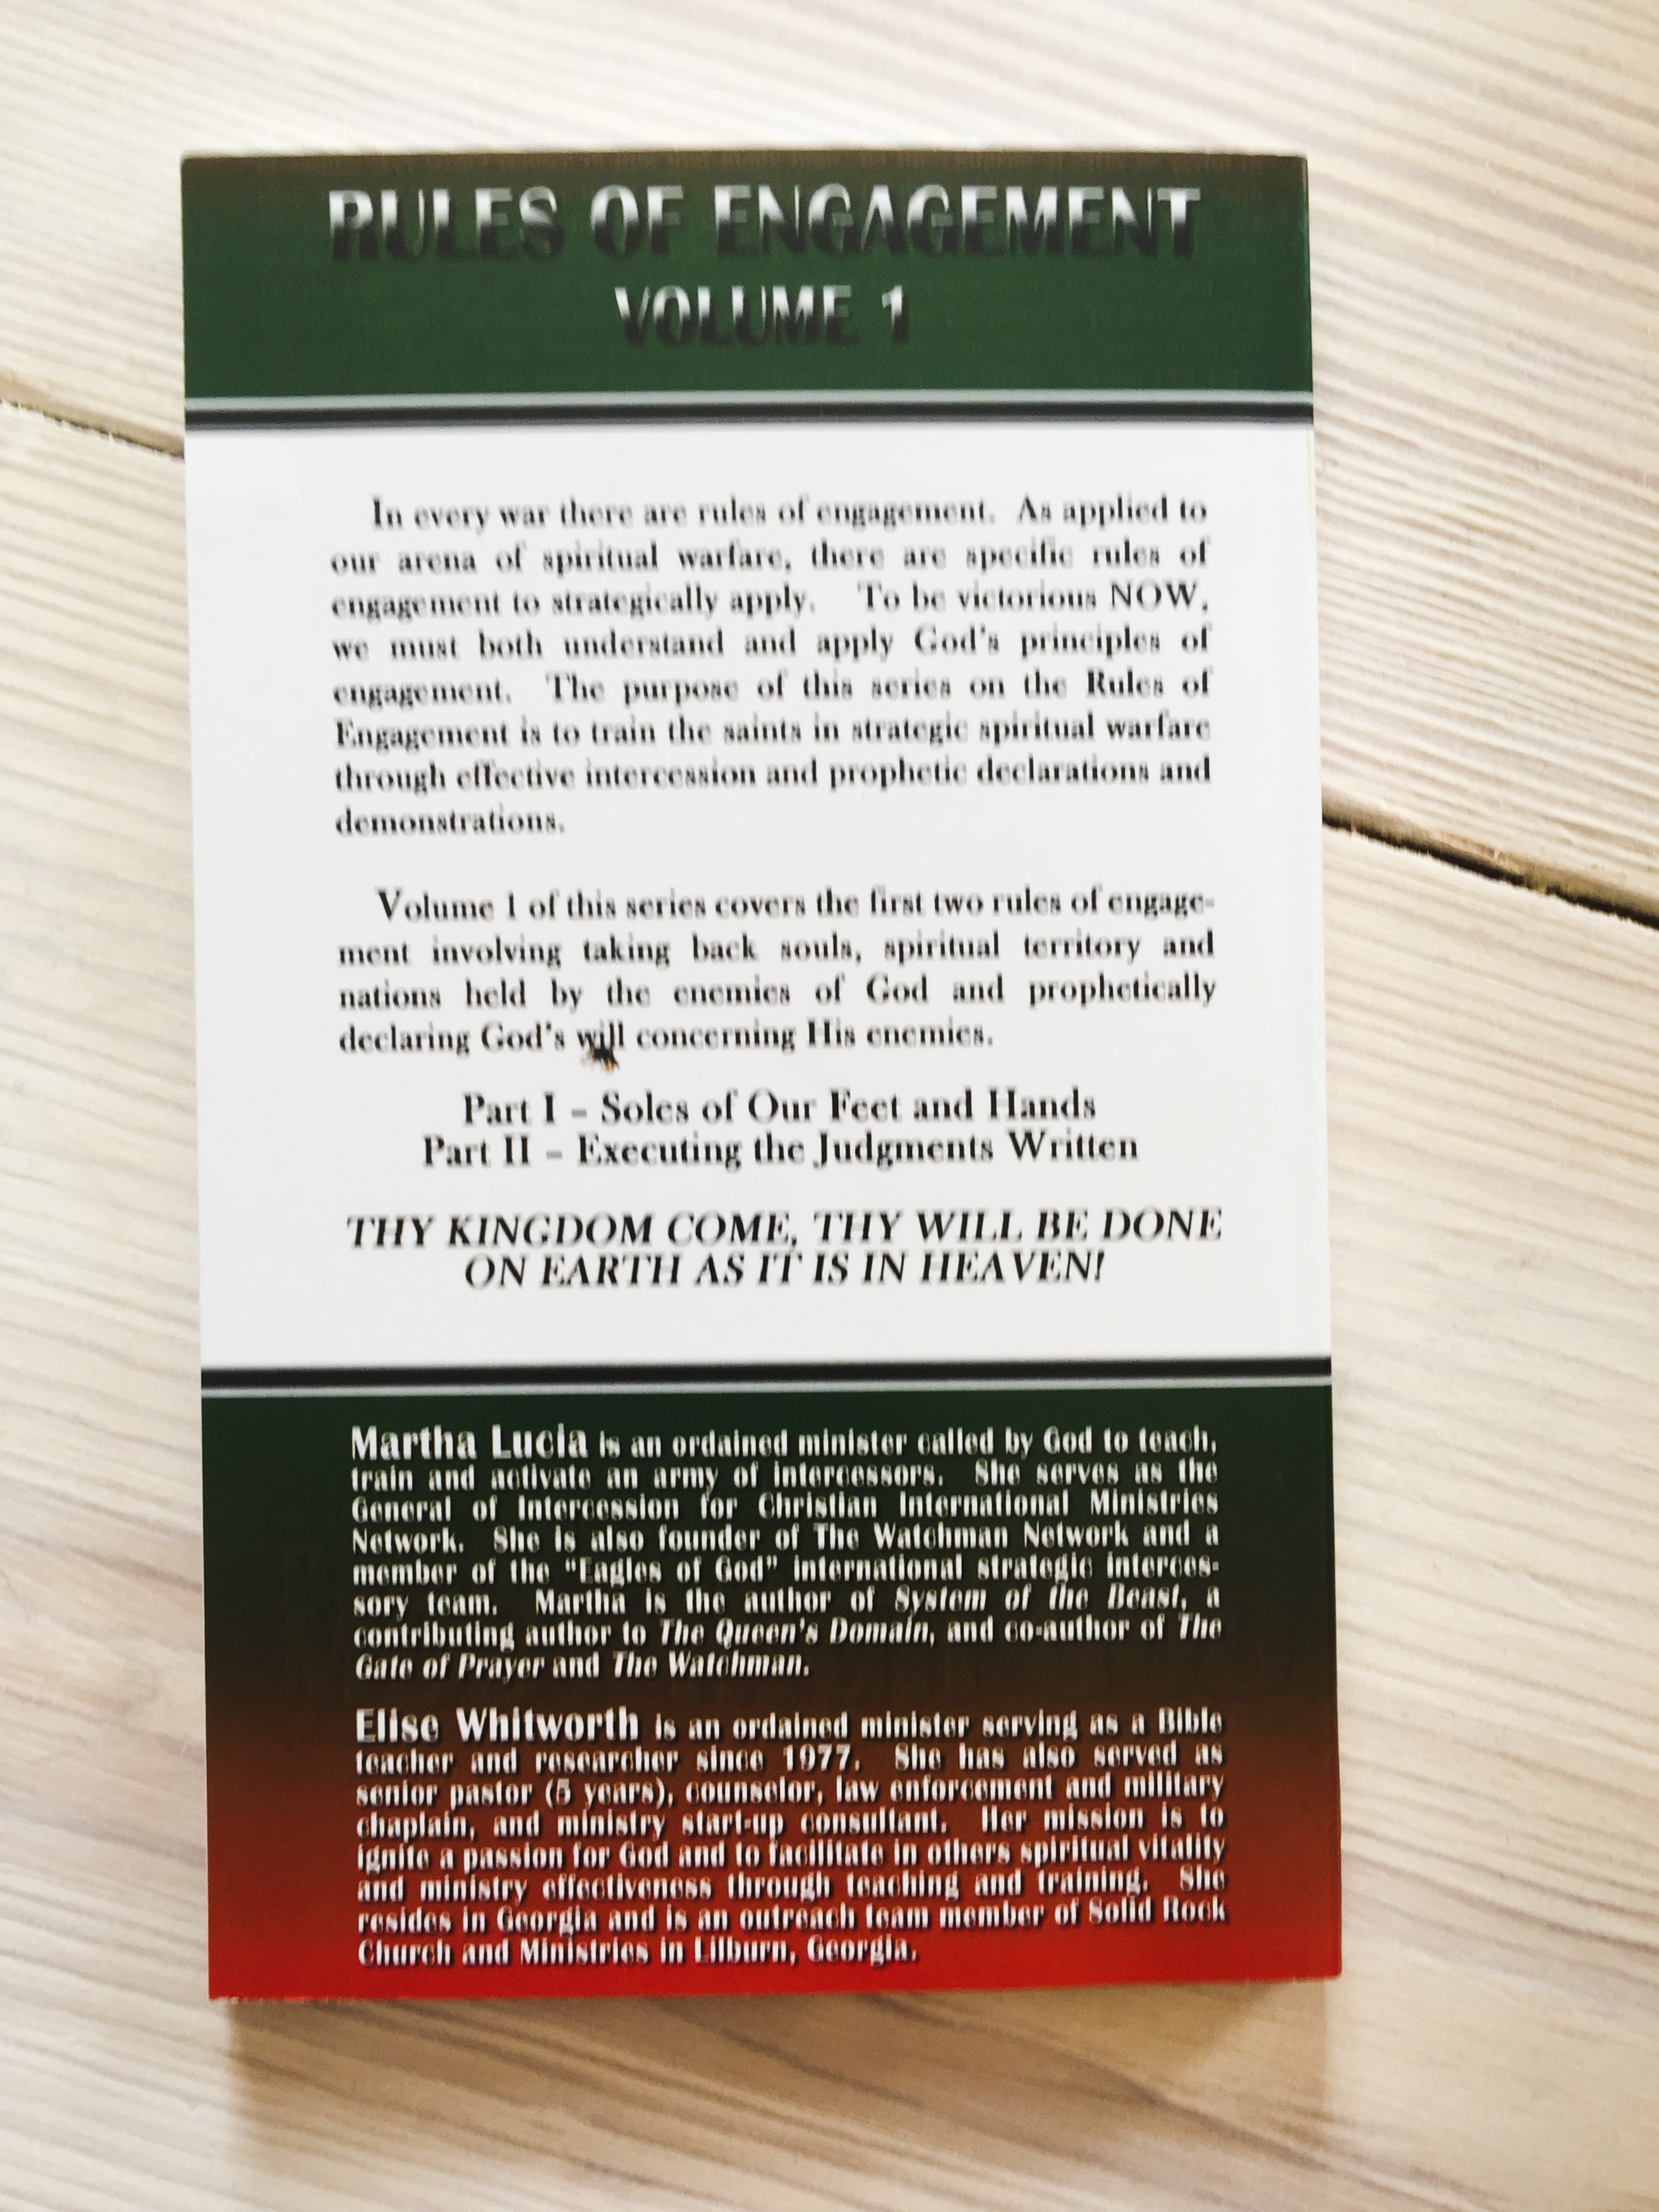 Rules of Engagement Vol  1 - Strategic Principles of Prayer and  Intercession - Paperback